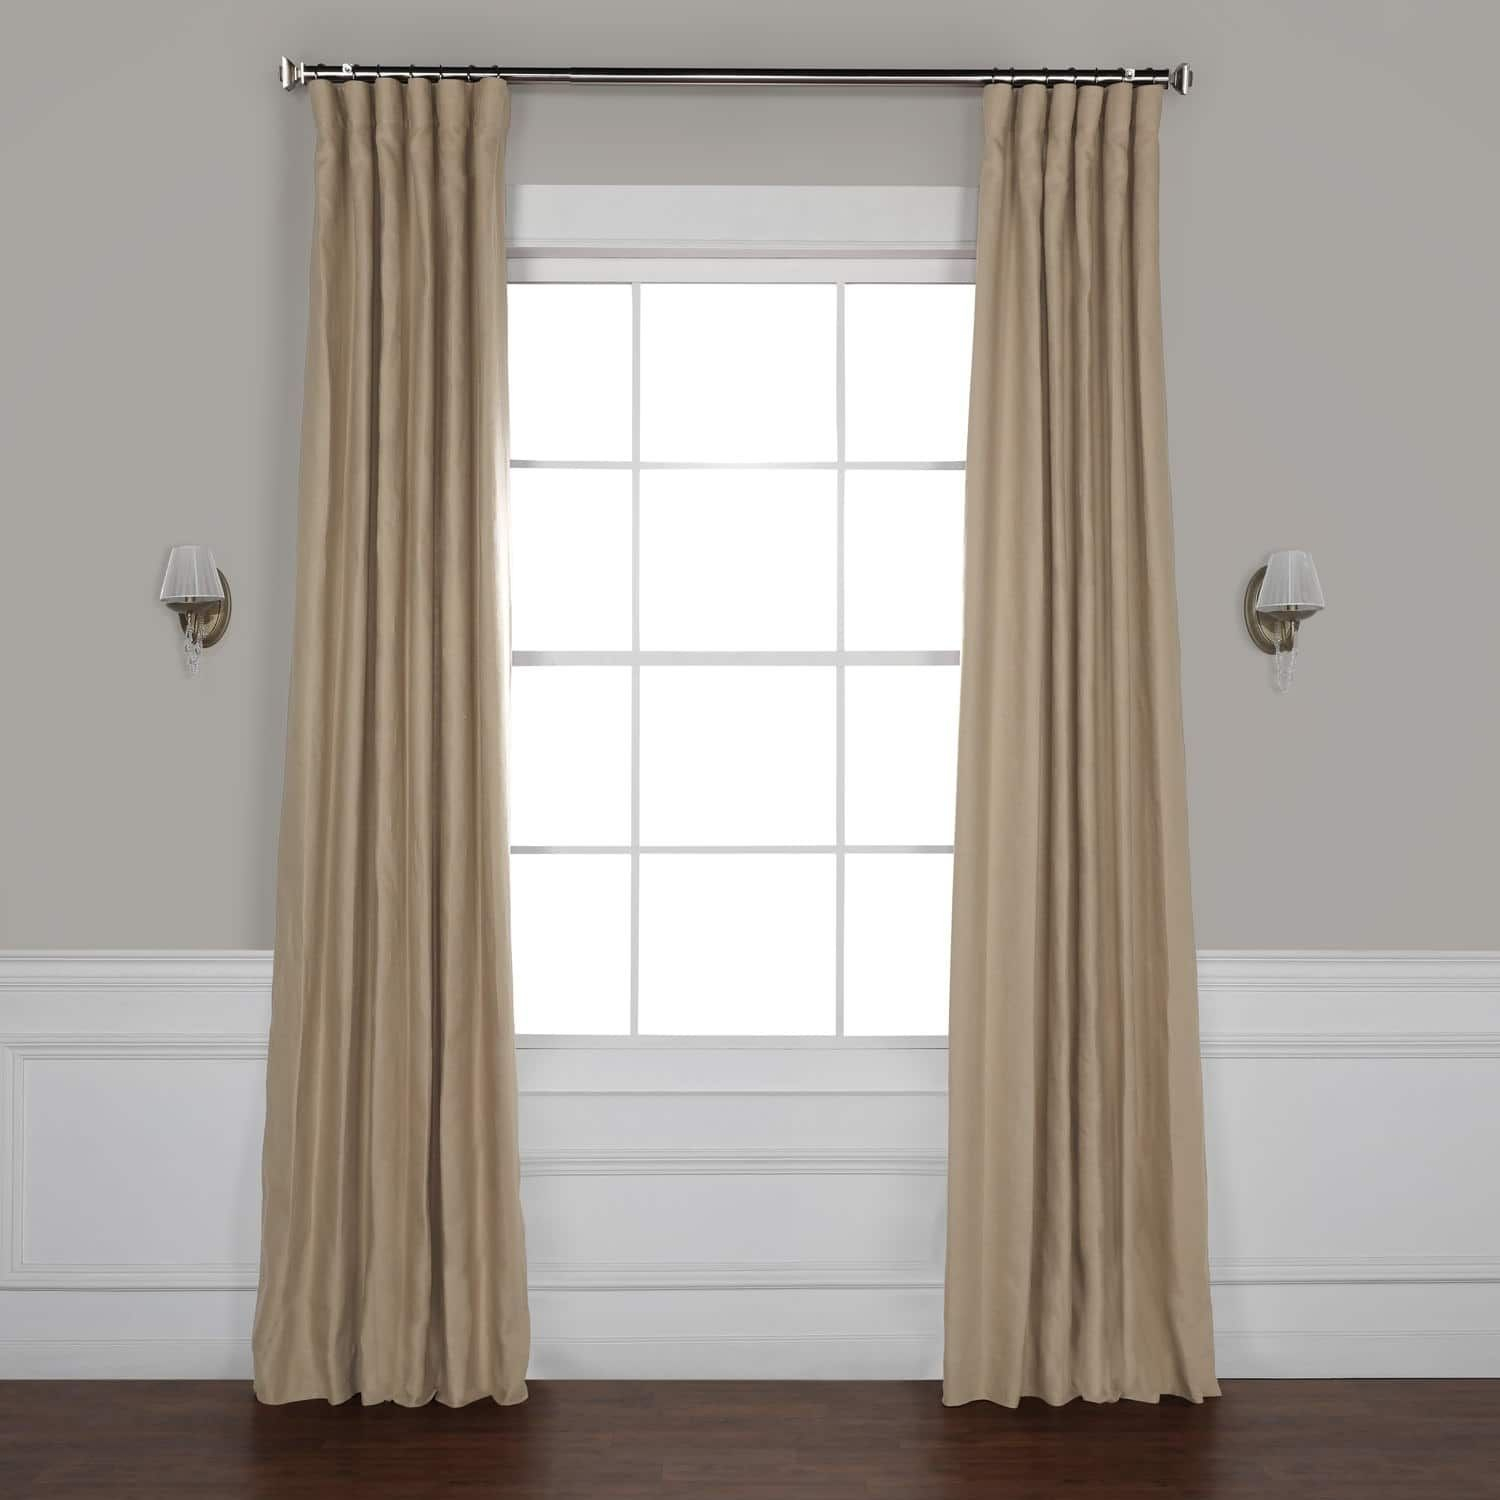 Exclusive Fabrics French Linen Lined Curtain Panel Pertaining To French Linen Lined Curtain Panels (View 3 of 20)